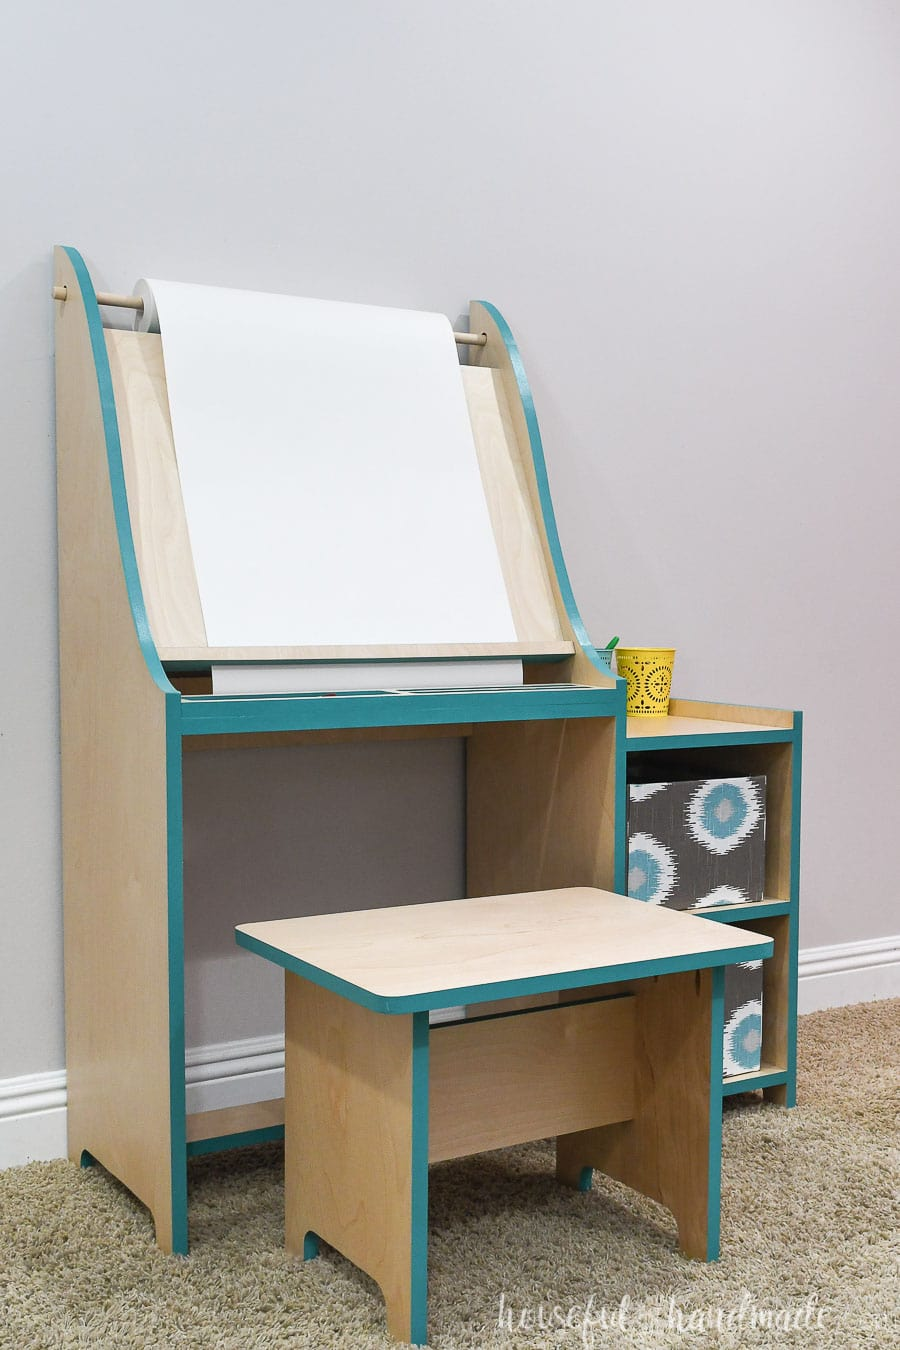 Kids art easel made from wood with shelves on the side and matching bench.